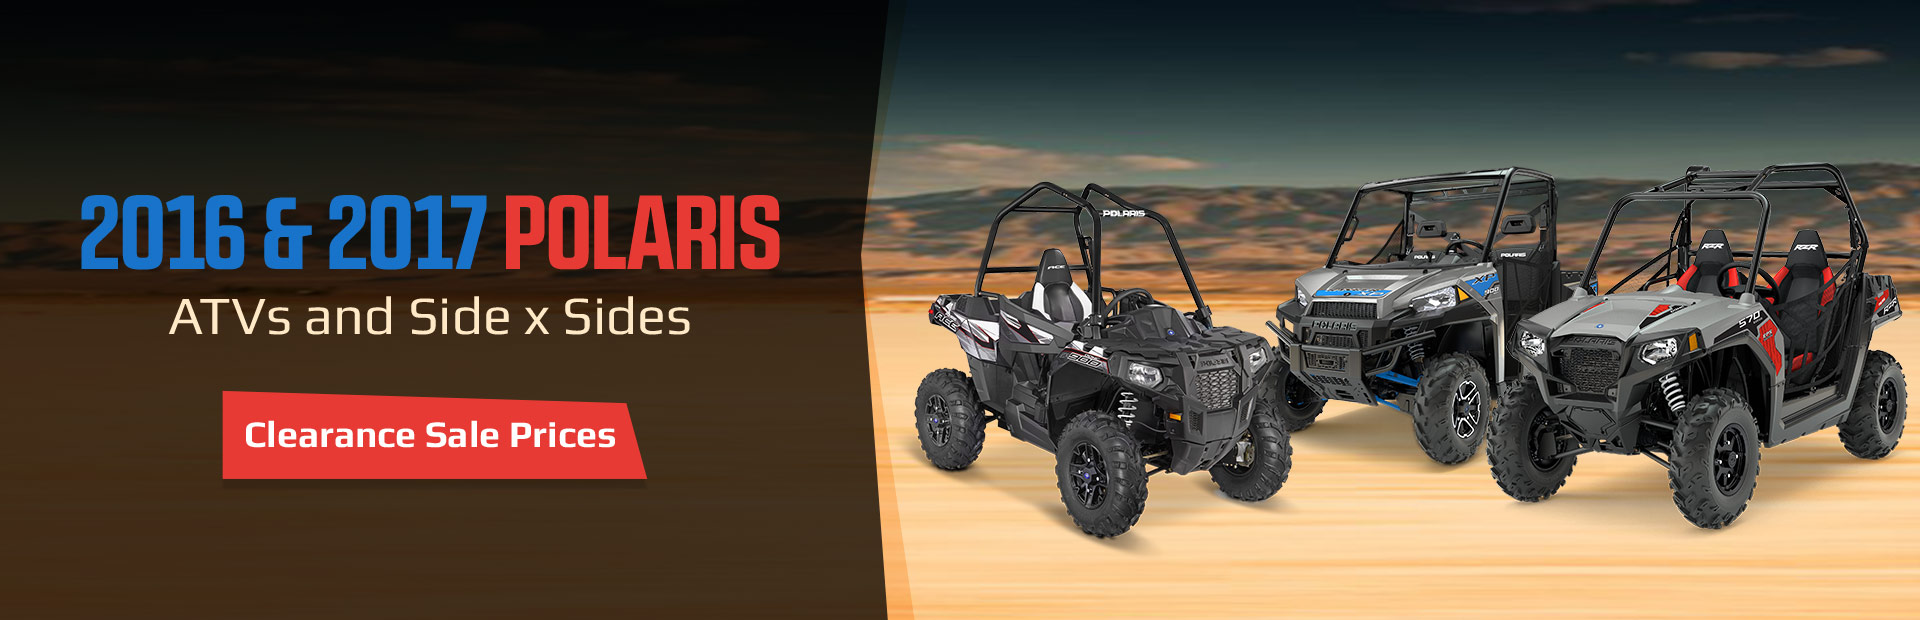 Get clearance sale prices on 2016 and 2017 Polaris ATVs and side x sides! Click here to view the models.